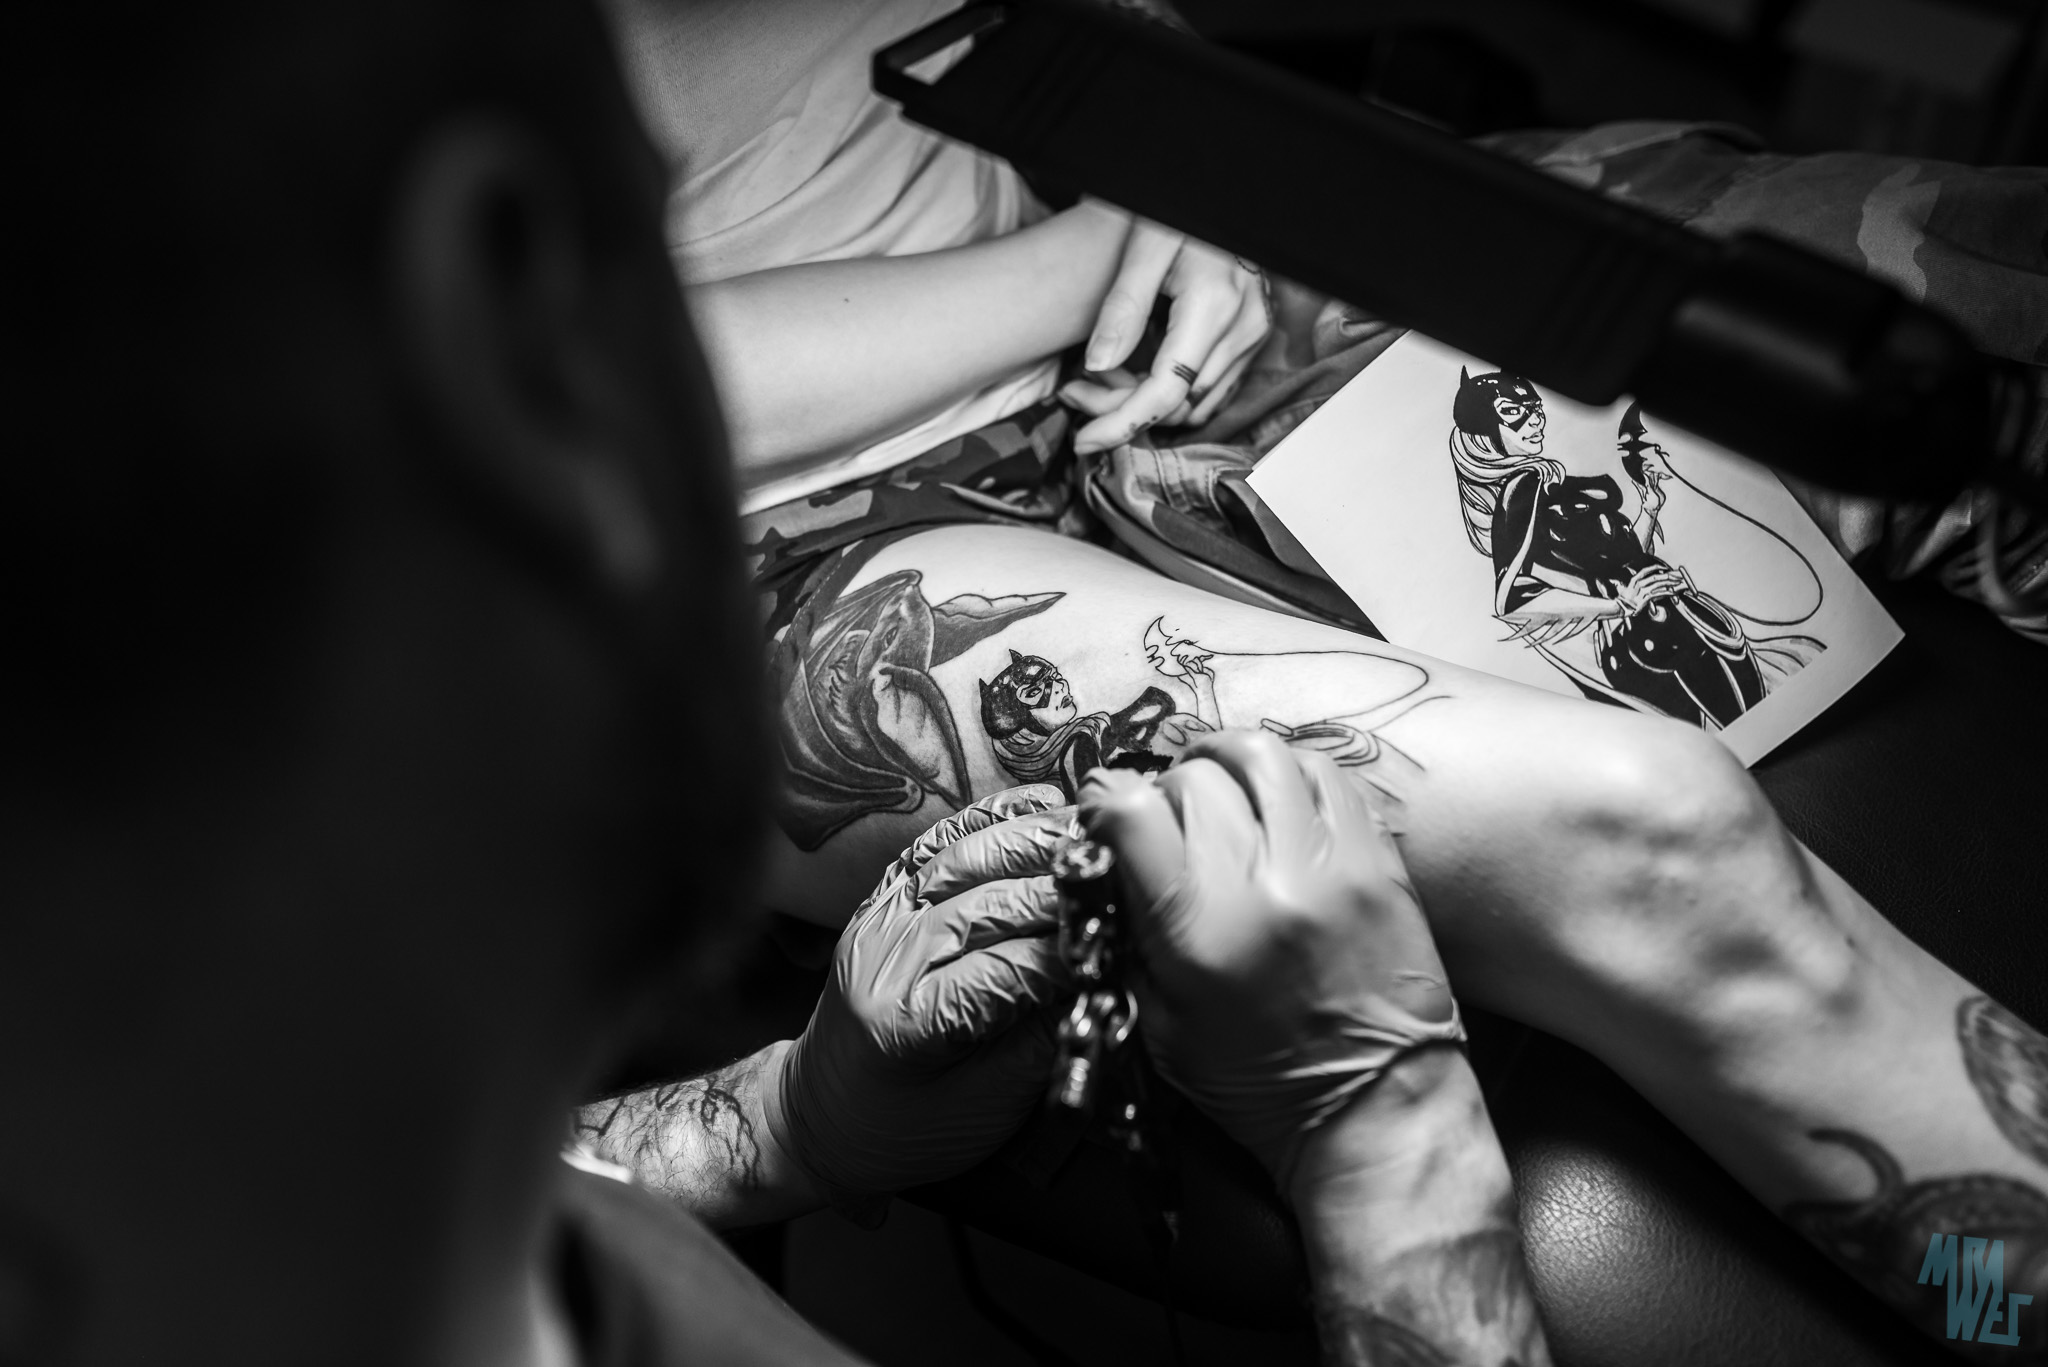 Nat_tattoo_Tešlo__004__web